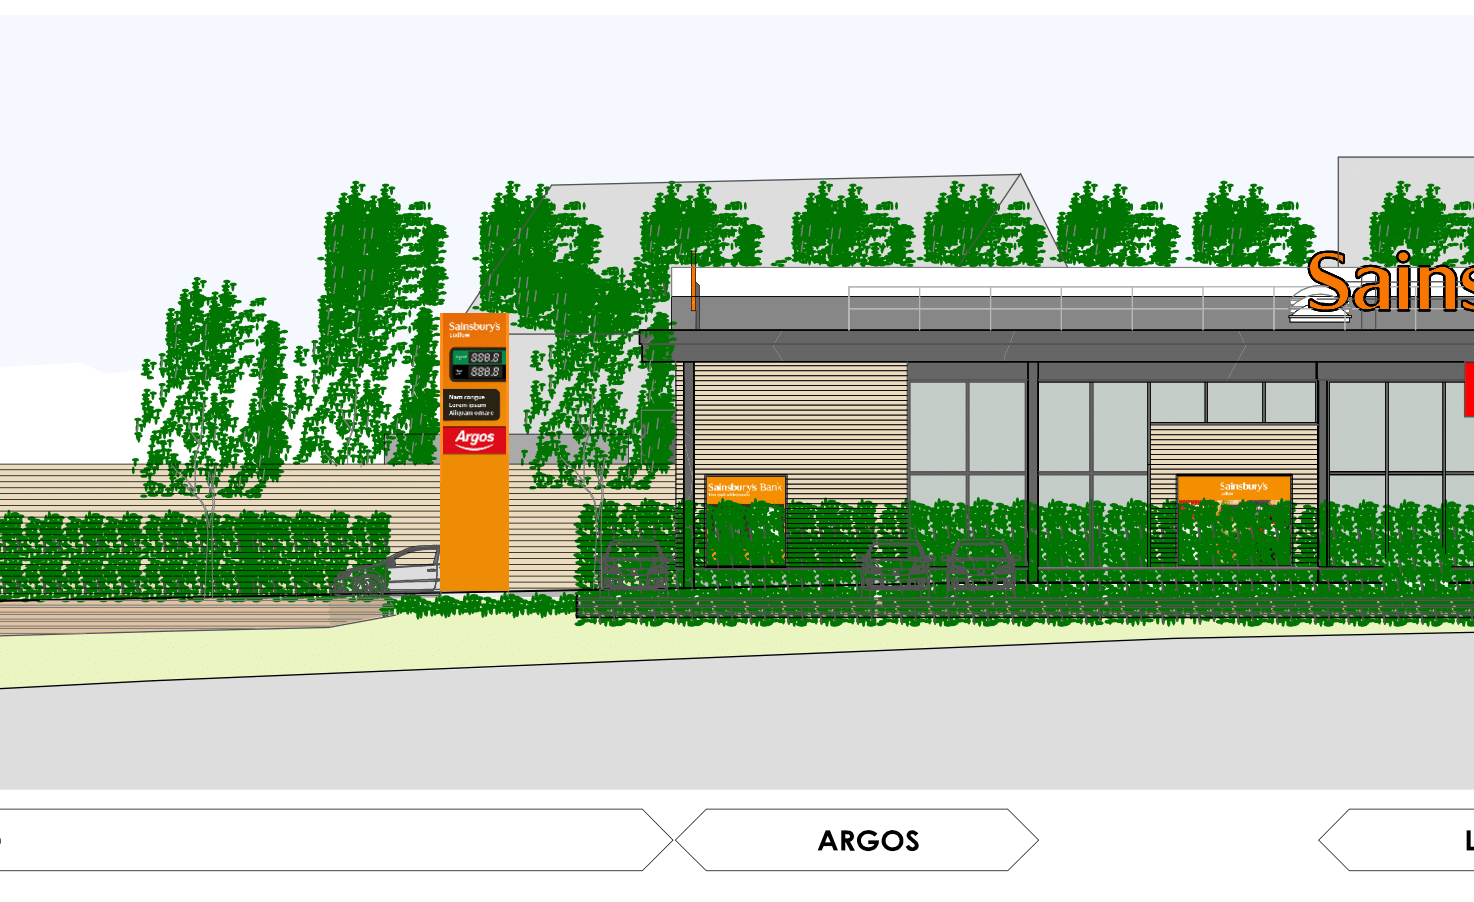 Planners to ask councillors to approve Rocks Green Sainsbury's supermarket and petrol station next week